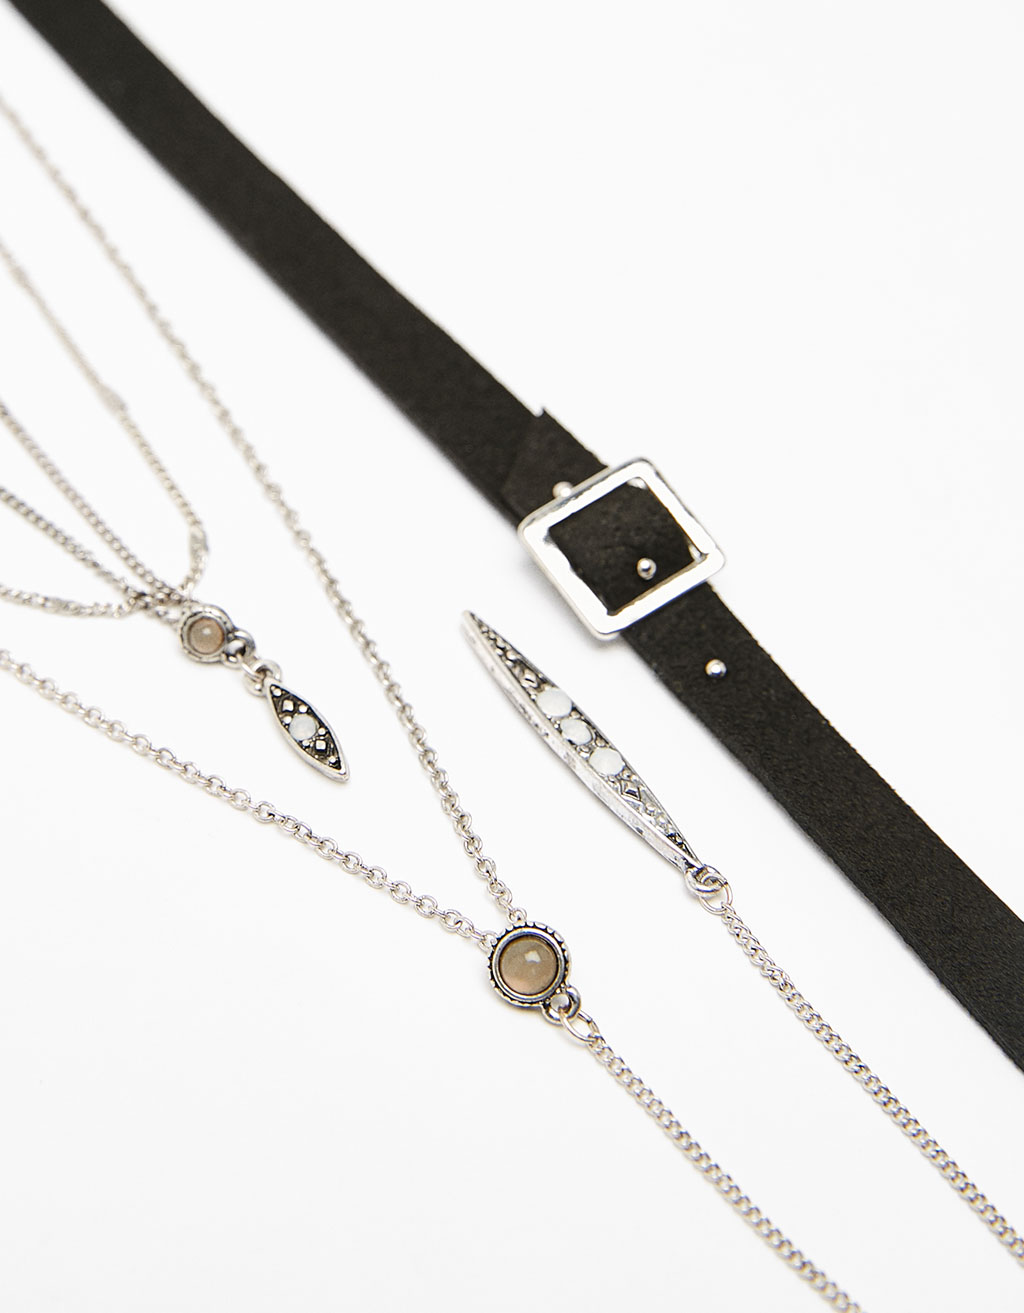 Bohemian choker set with buckle and fine chains